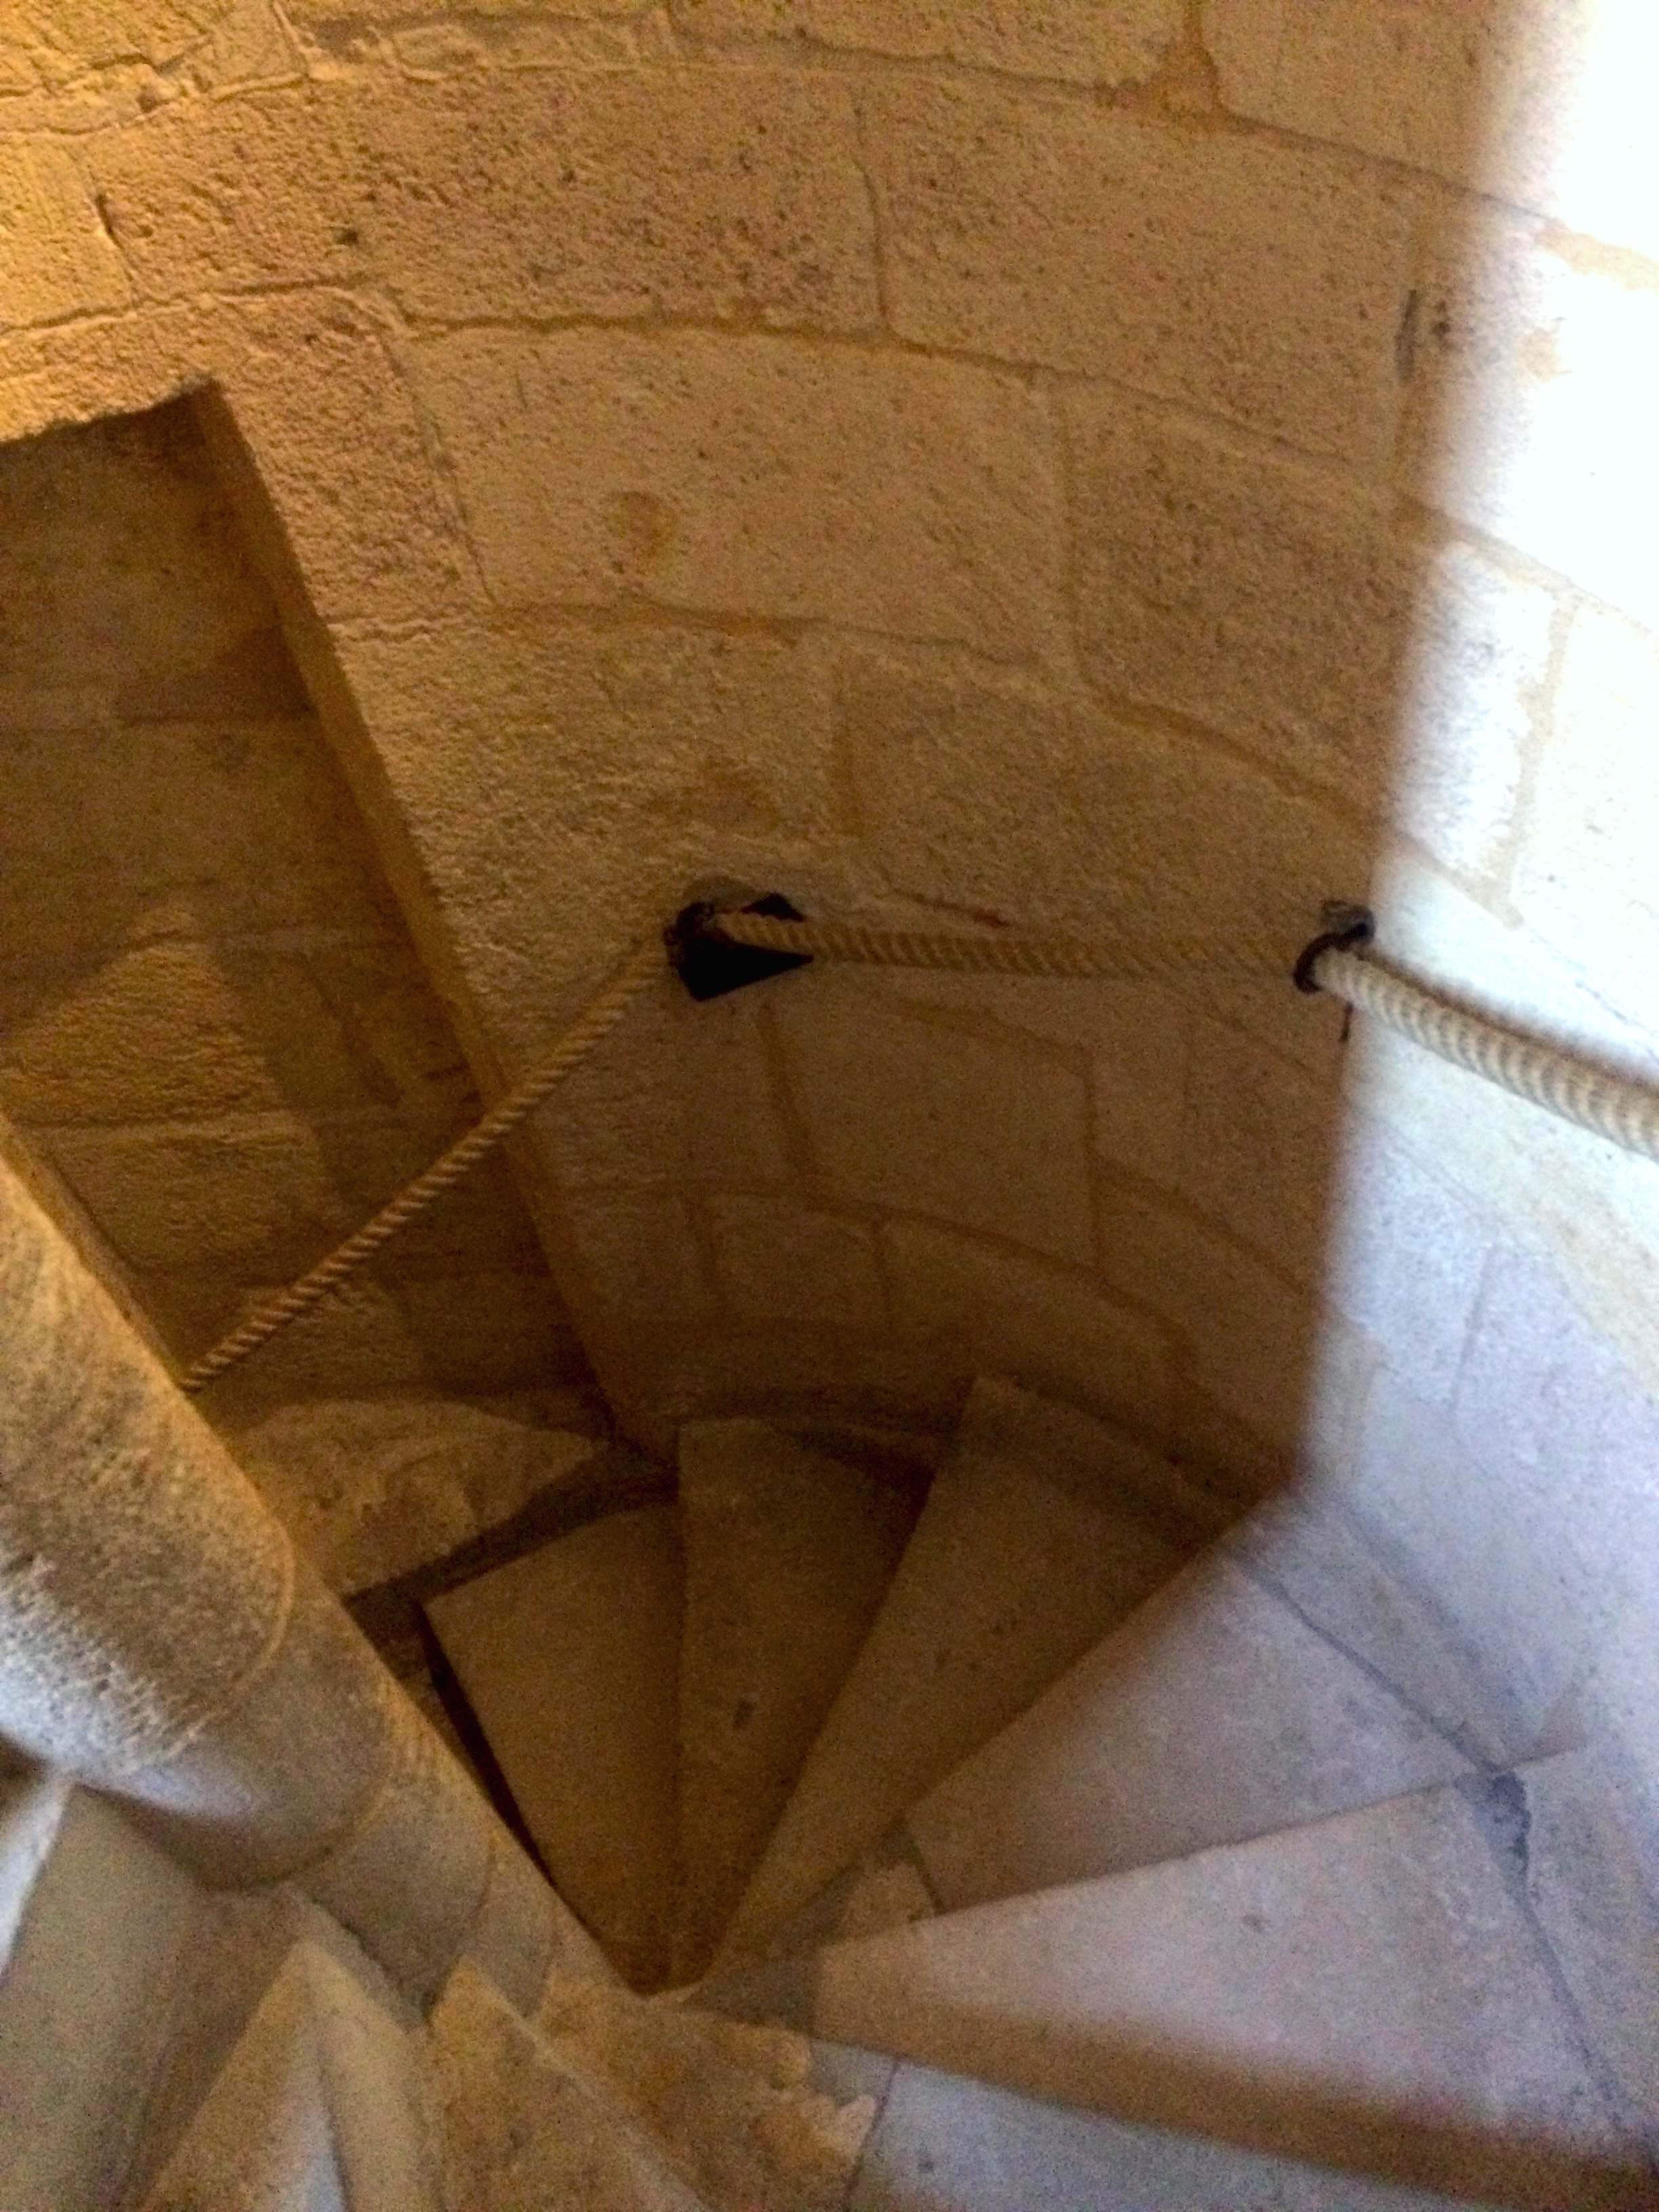 Spiral stairs make me just as dizzy as heights, apparently.